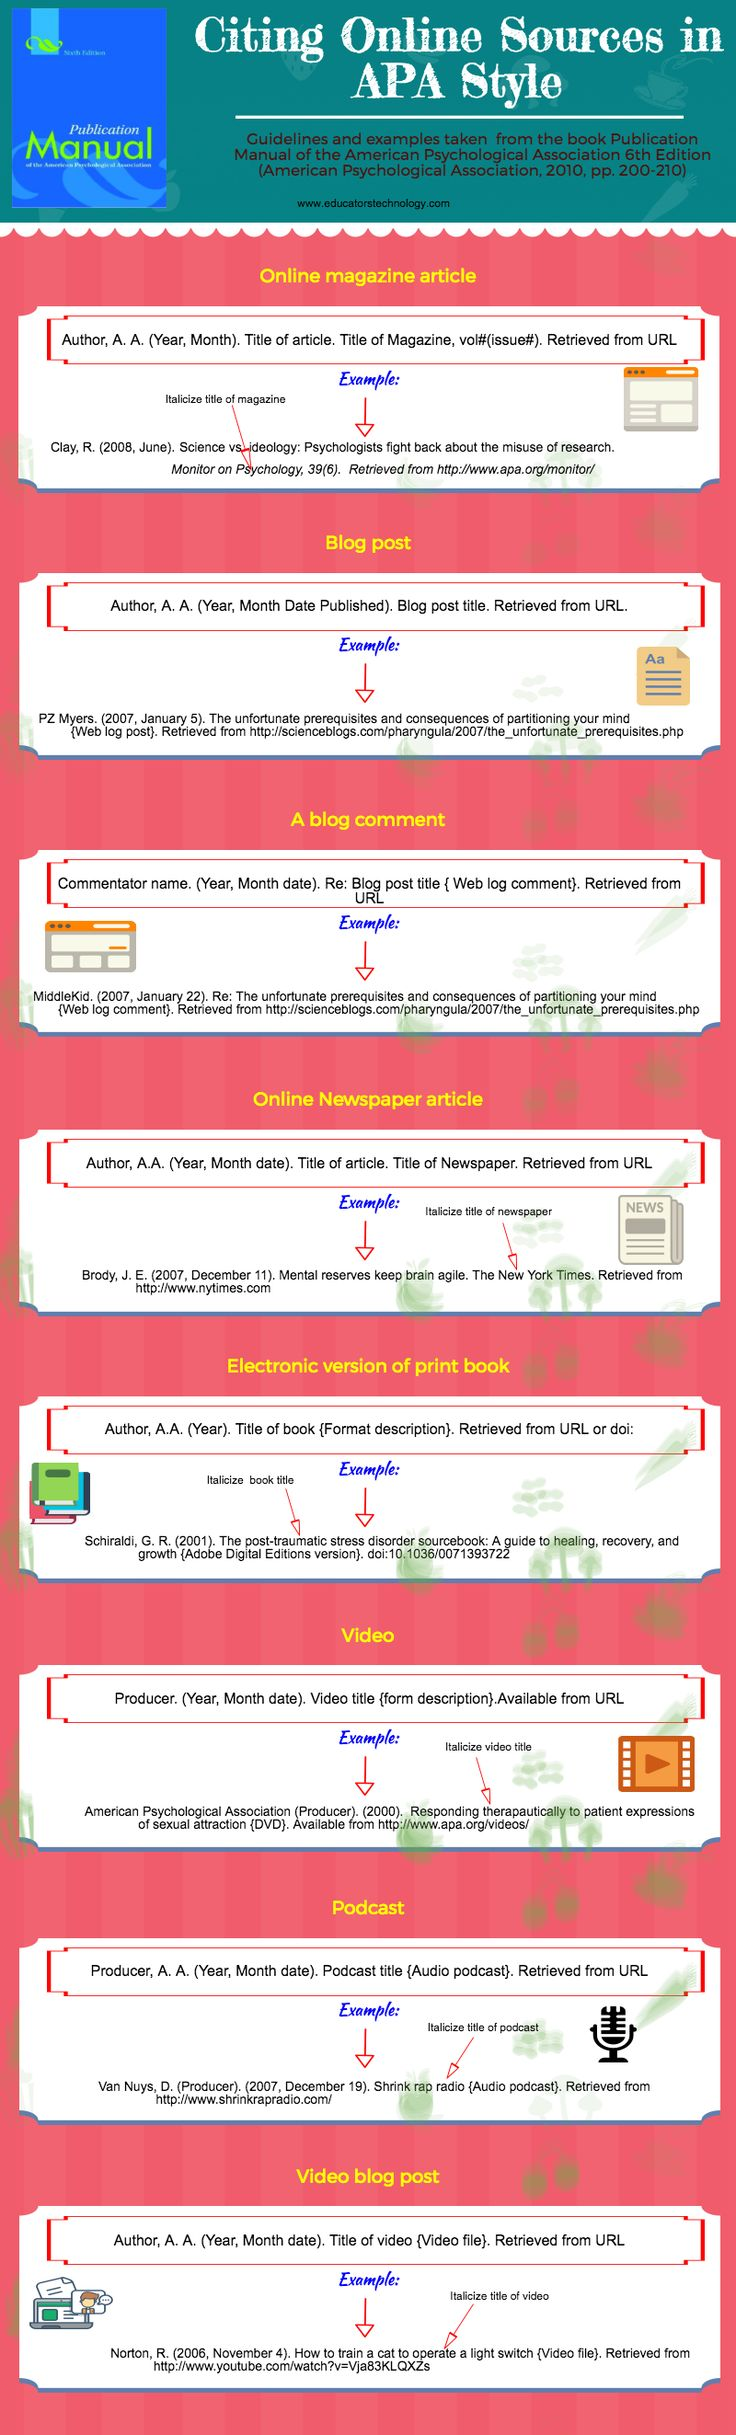 Students Guide to Citing Online Sources (APA Style)